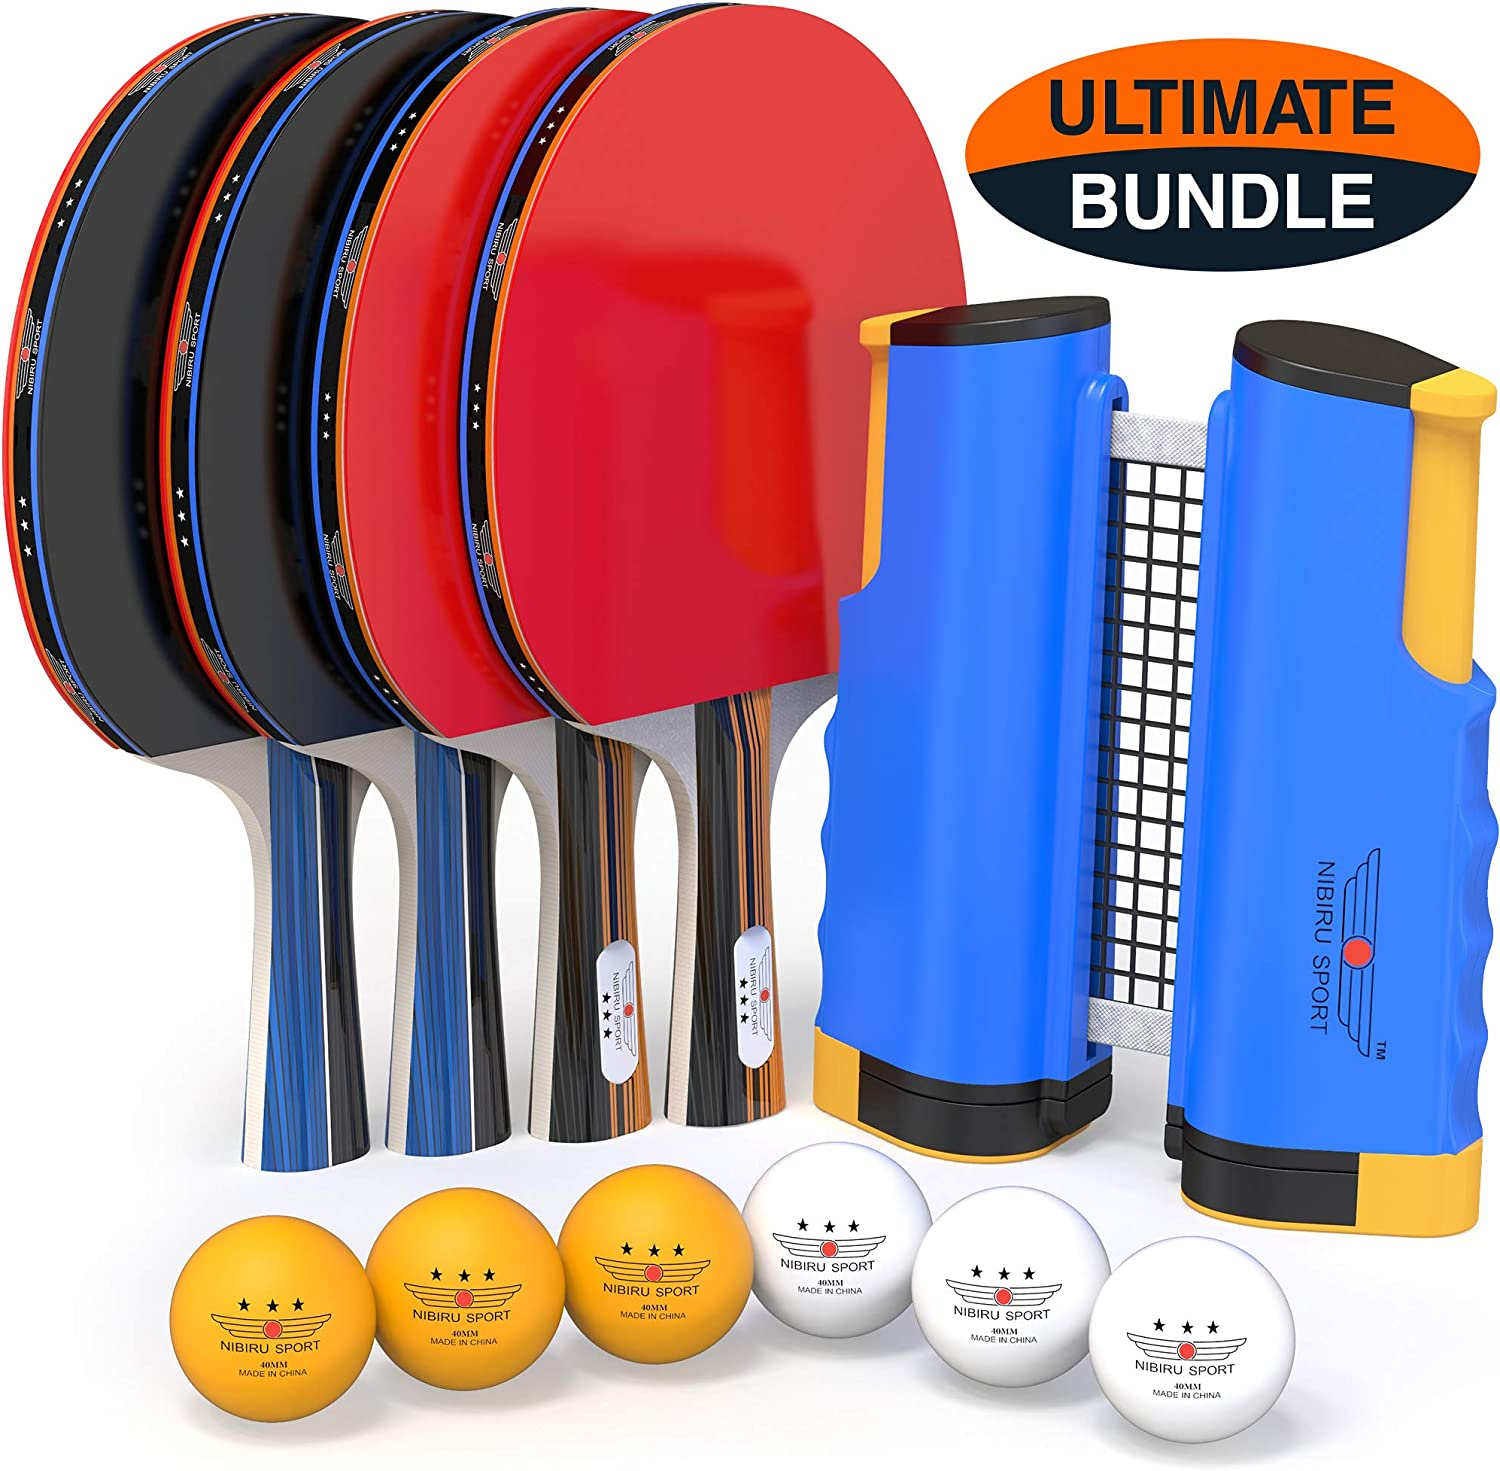 NIBIRU SPORT Professional Ping Pong Paddle Set with Retractable Net (Bracket Clamps), Balls, and Posts (3-Star) Regulation Table Tennis Accessories, Advanced Home Indoor or Outdoor Play, Storage Case